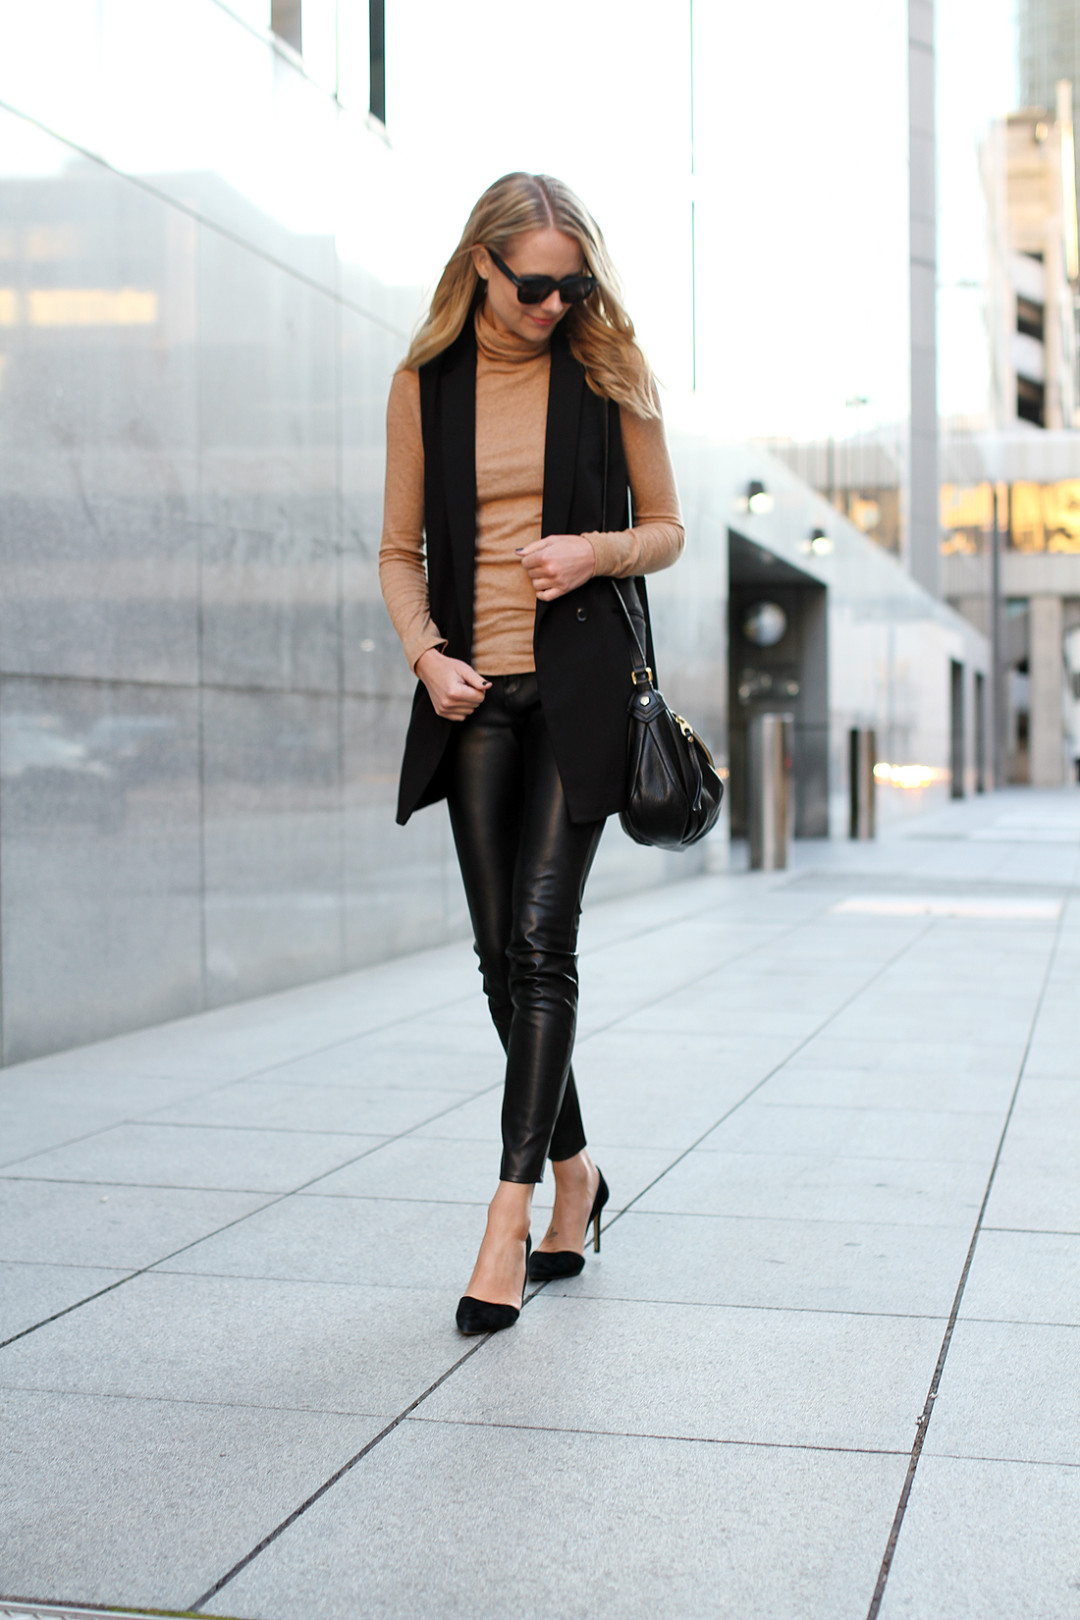 fashion-jackson-celine-sunglasses-camel-turtleneck-black-long-vest-black-faux-leather-skinny-pants-black-suede-pumps